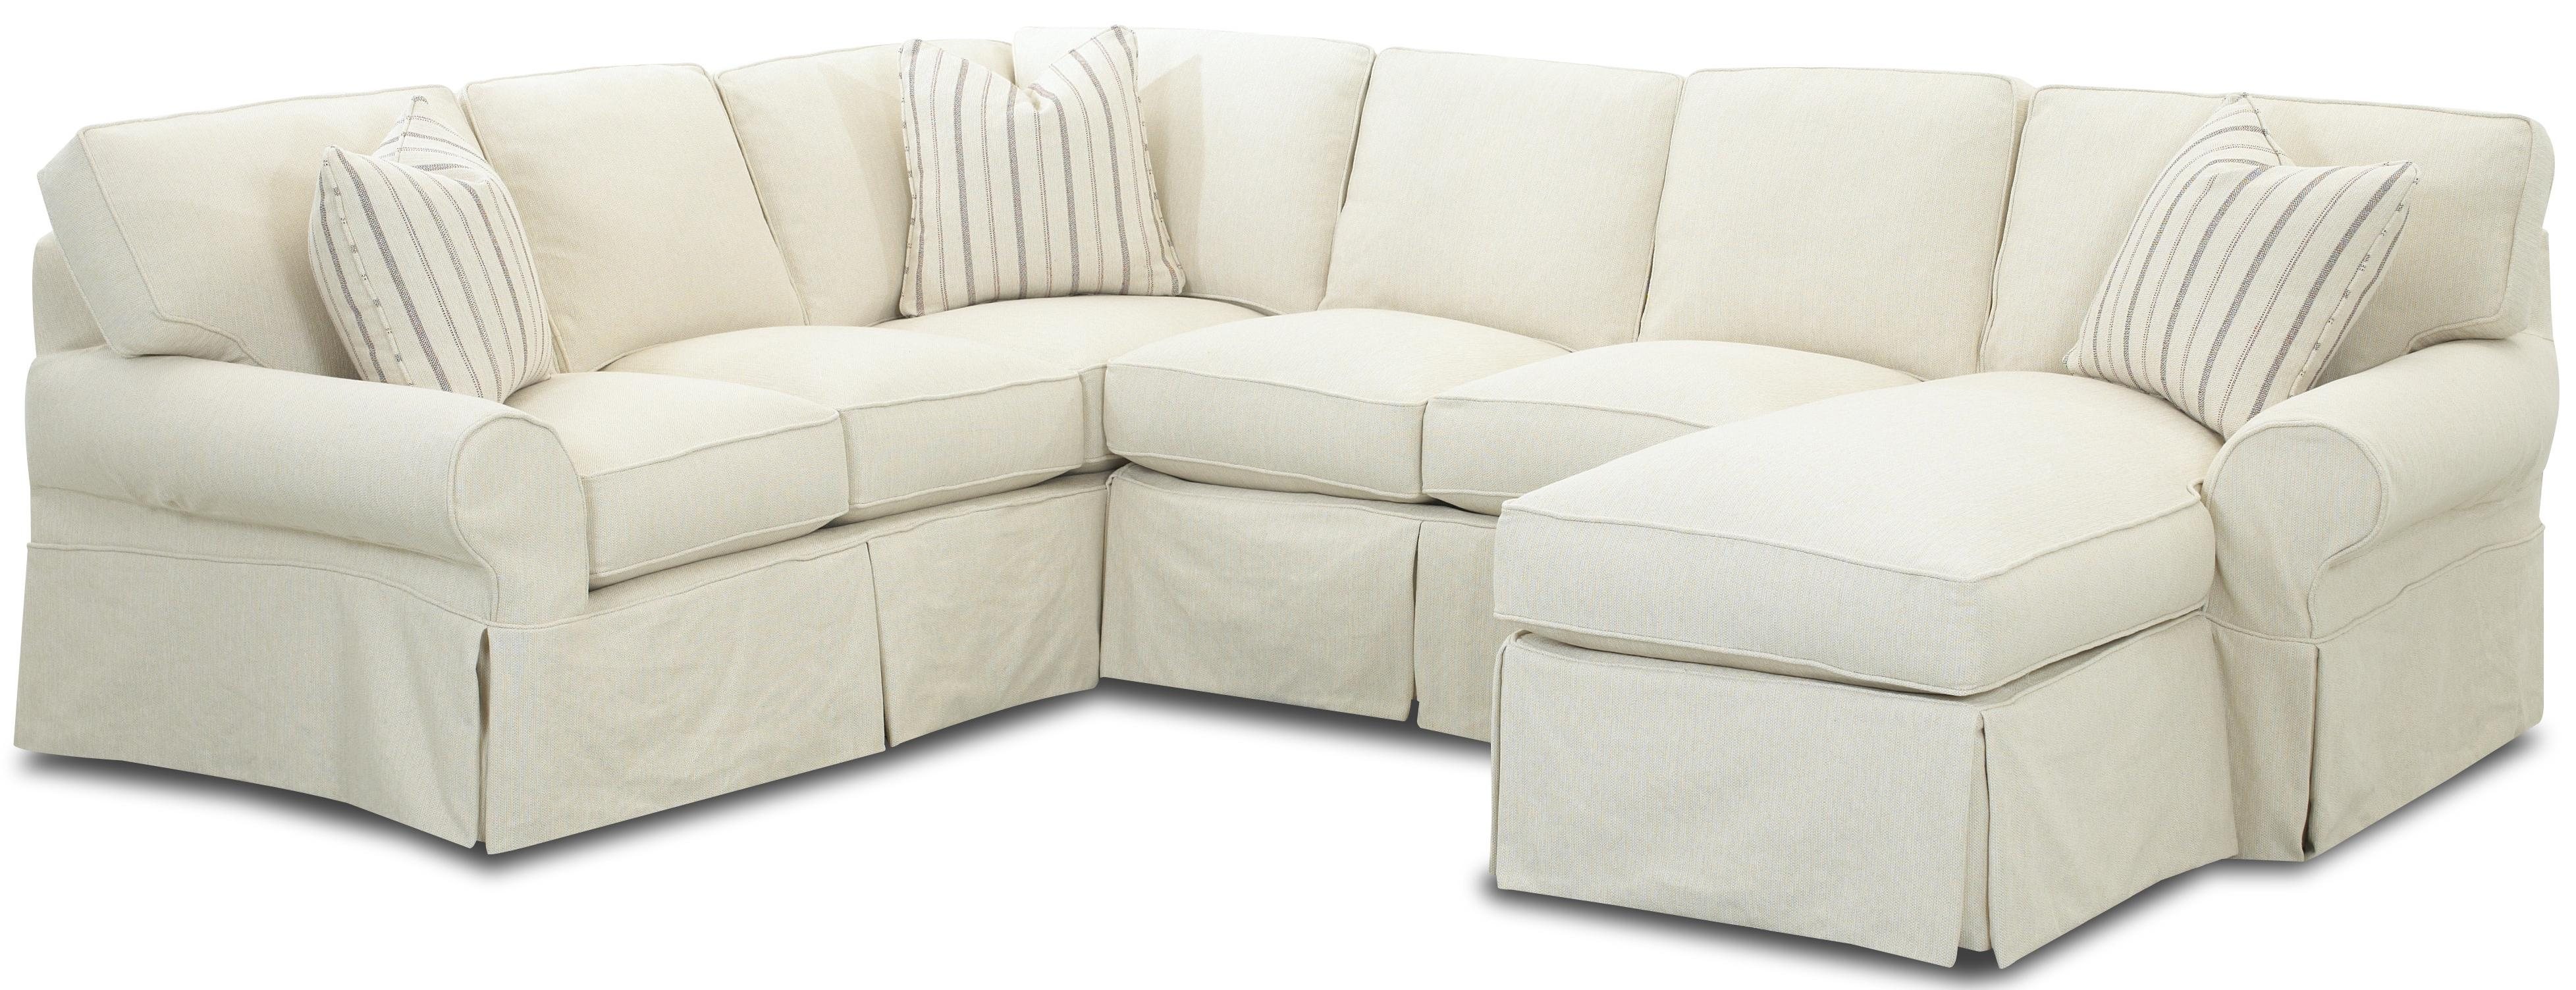 Ideas Comfortable Seating For Years To Come With Arhaus Sofas Pertaining To Washable Sofas (Image 3 of 15)